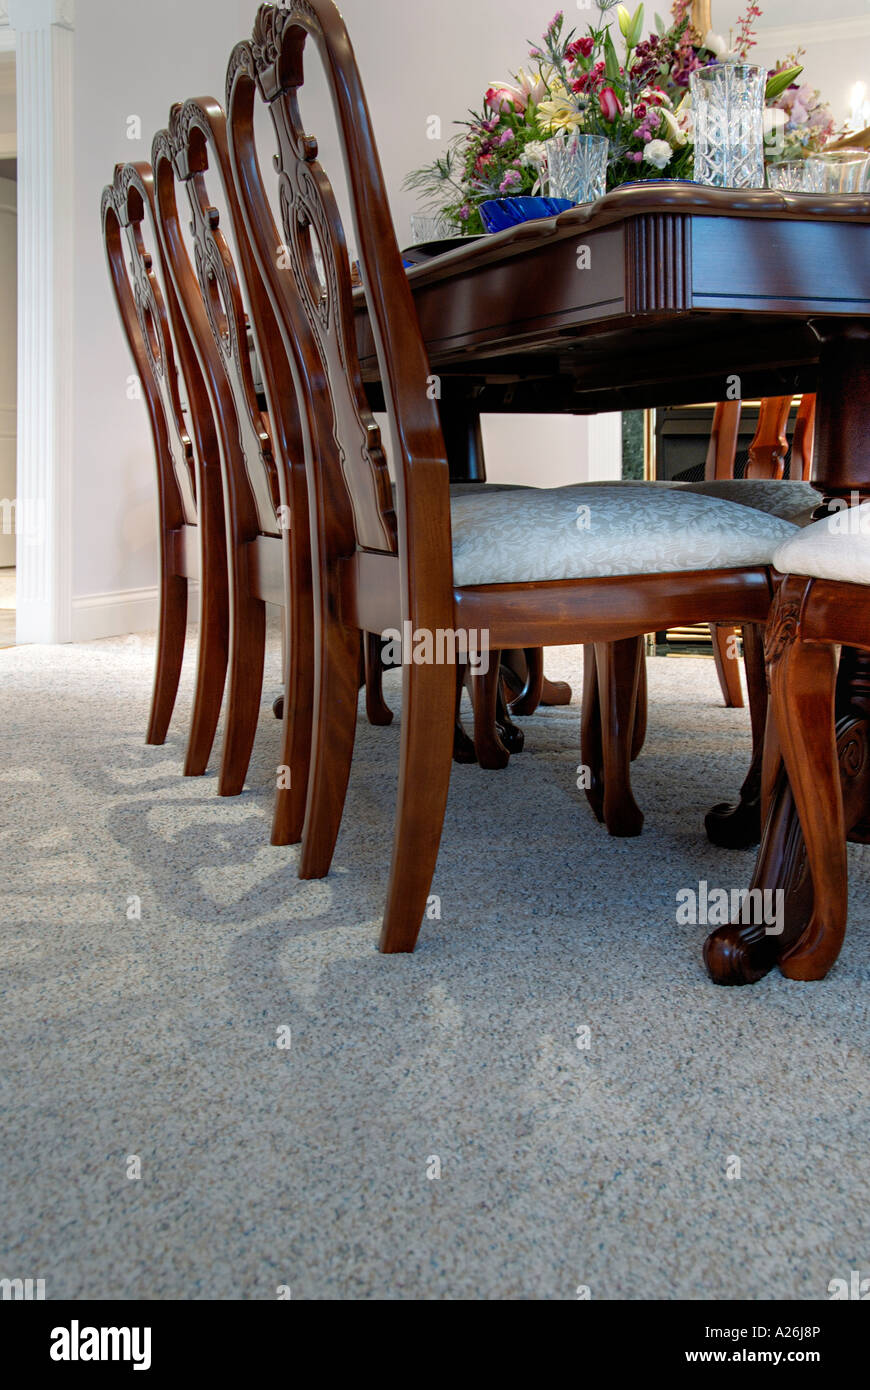 Low Angle View Of A Dining Room Table And Floor